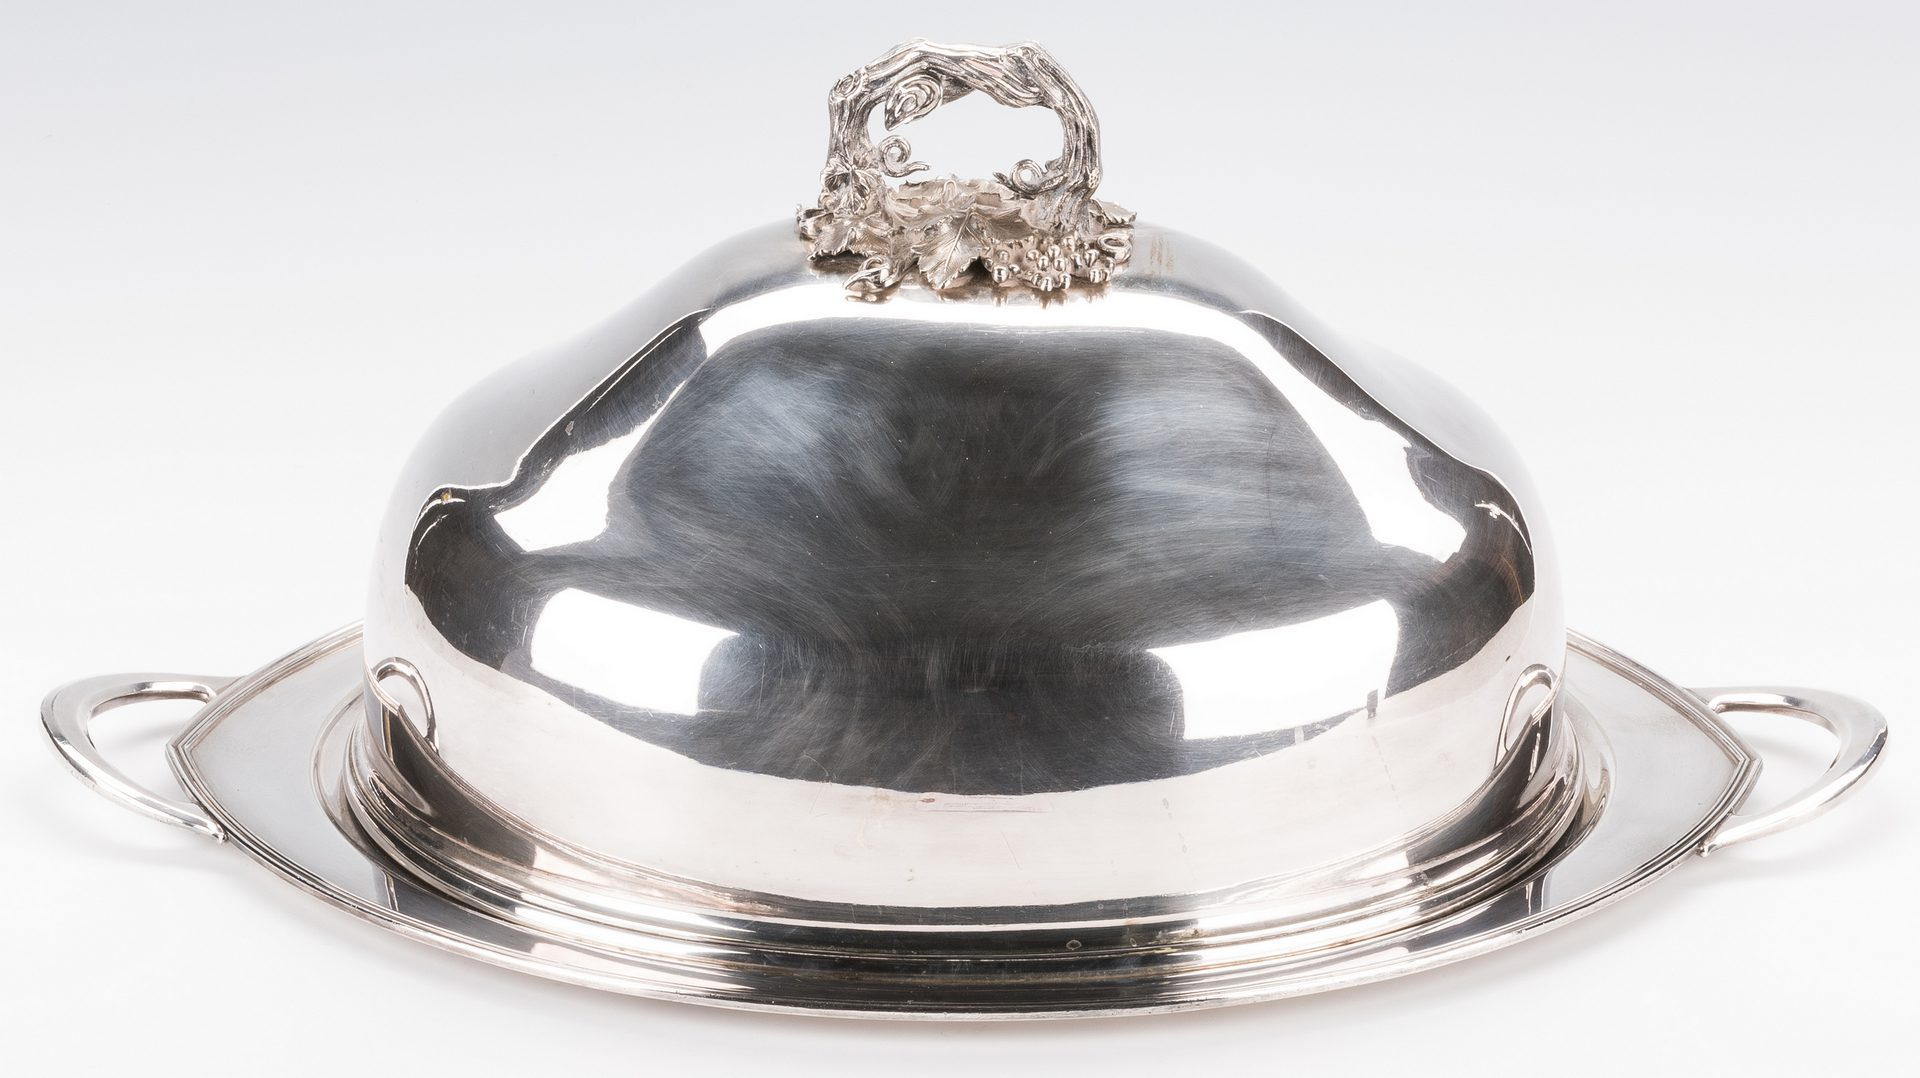 Lot 862: Silverplate Meat Dome Cover w/ Undertray